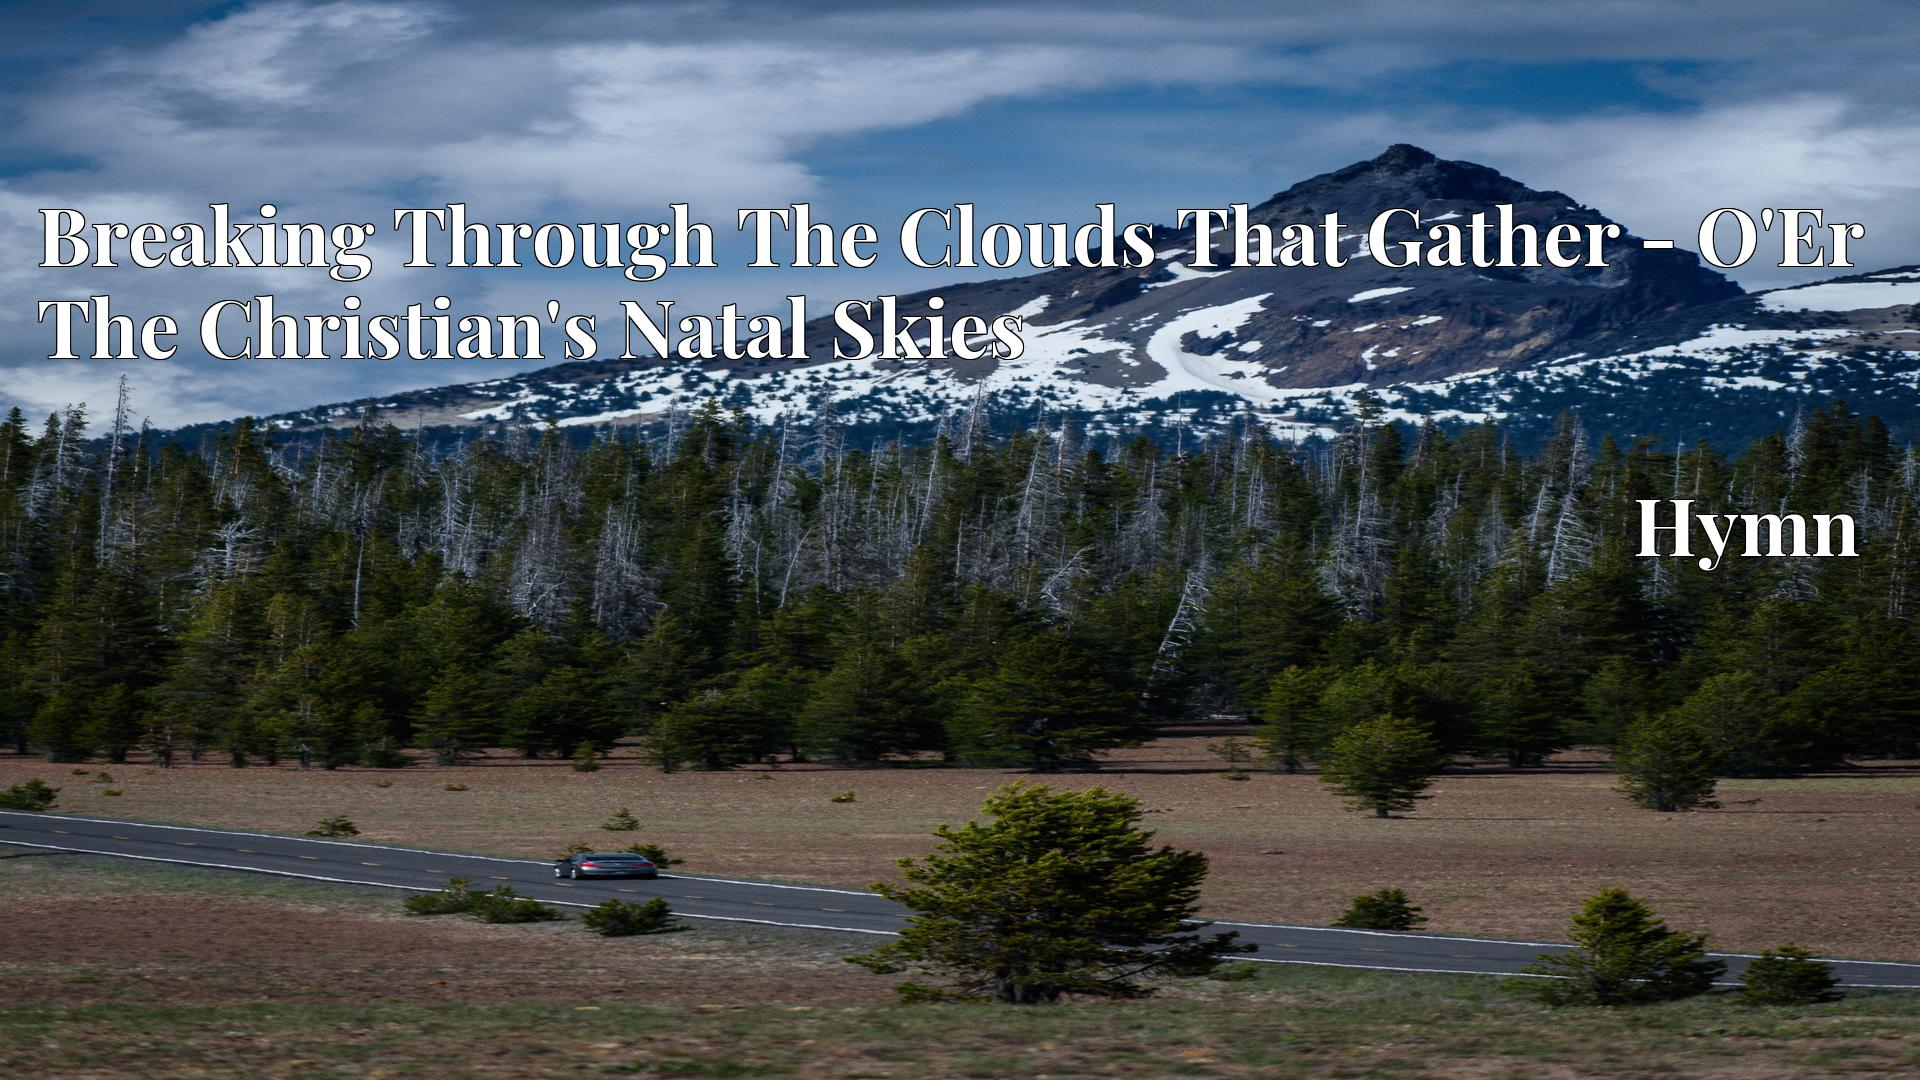 Breaking Through The Clouds That Gather - O'Er The Christian's Natal Skies Hymn